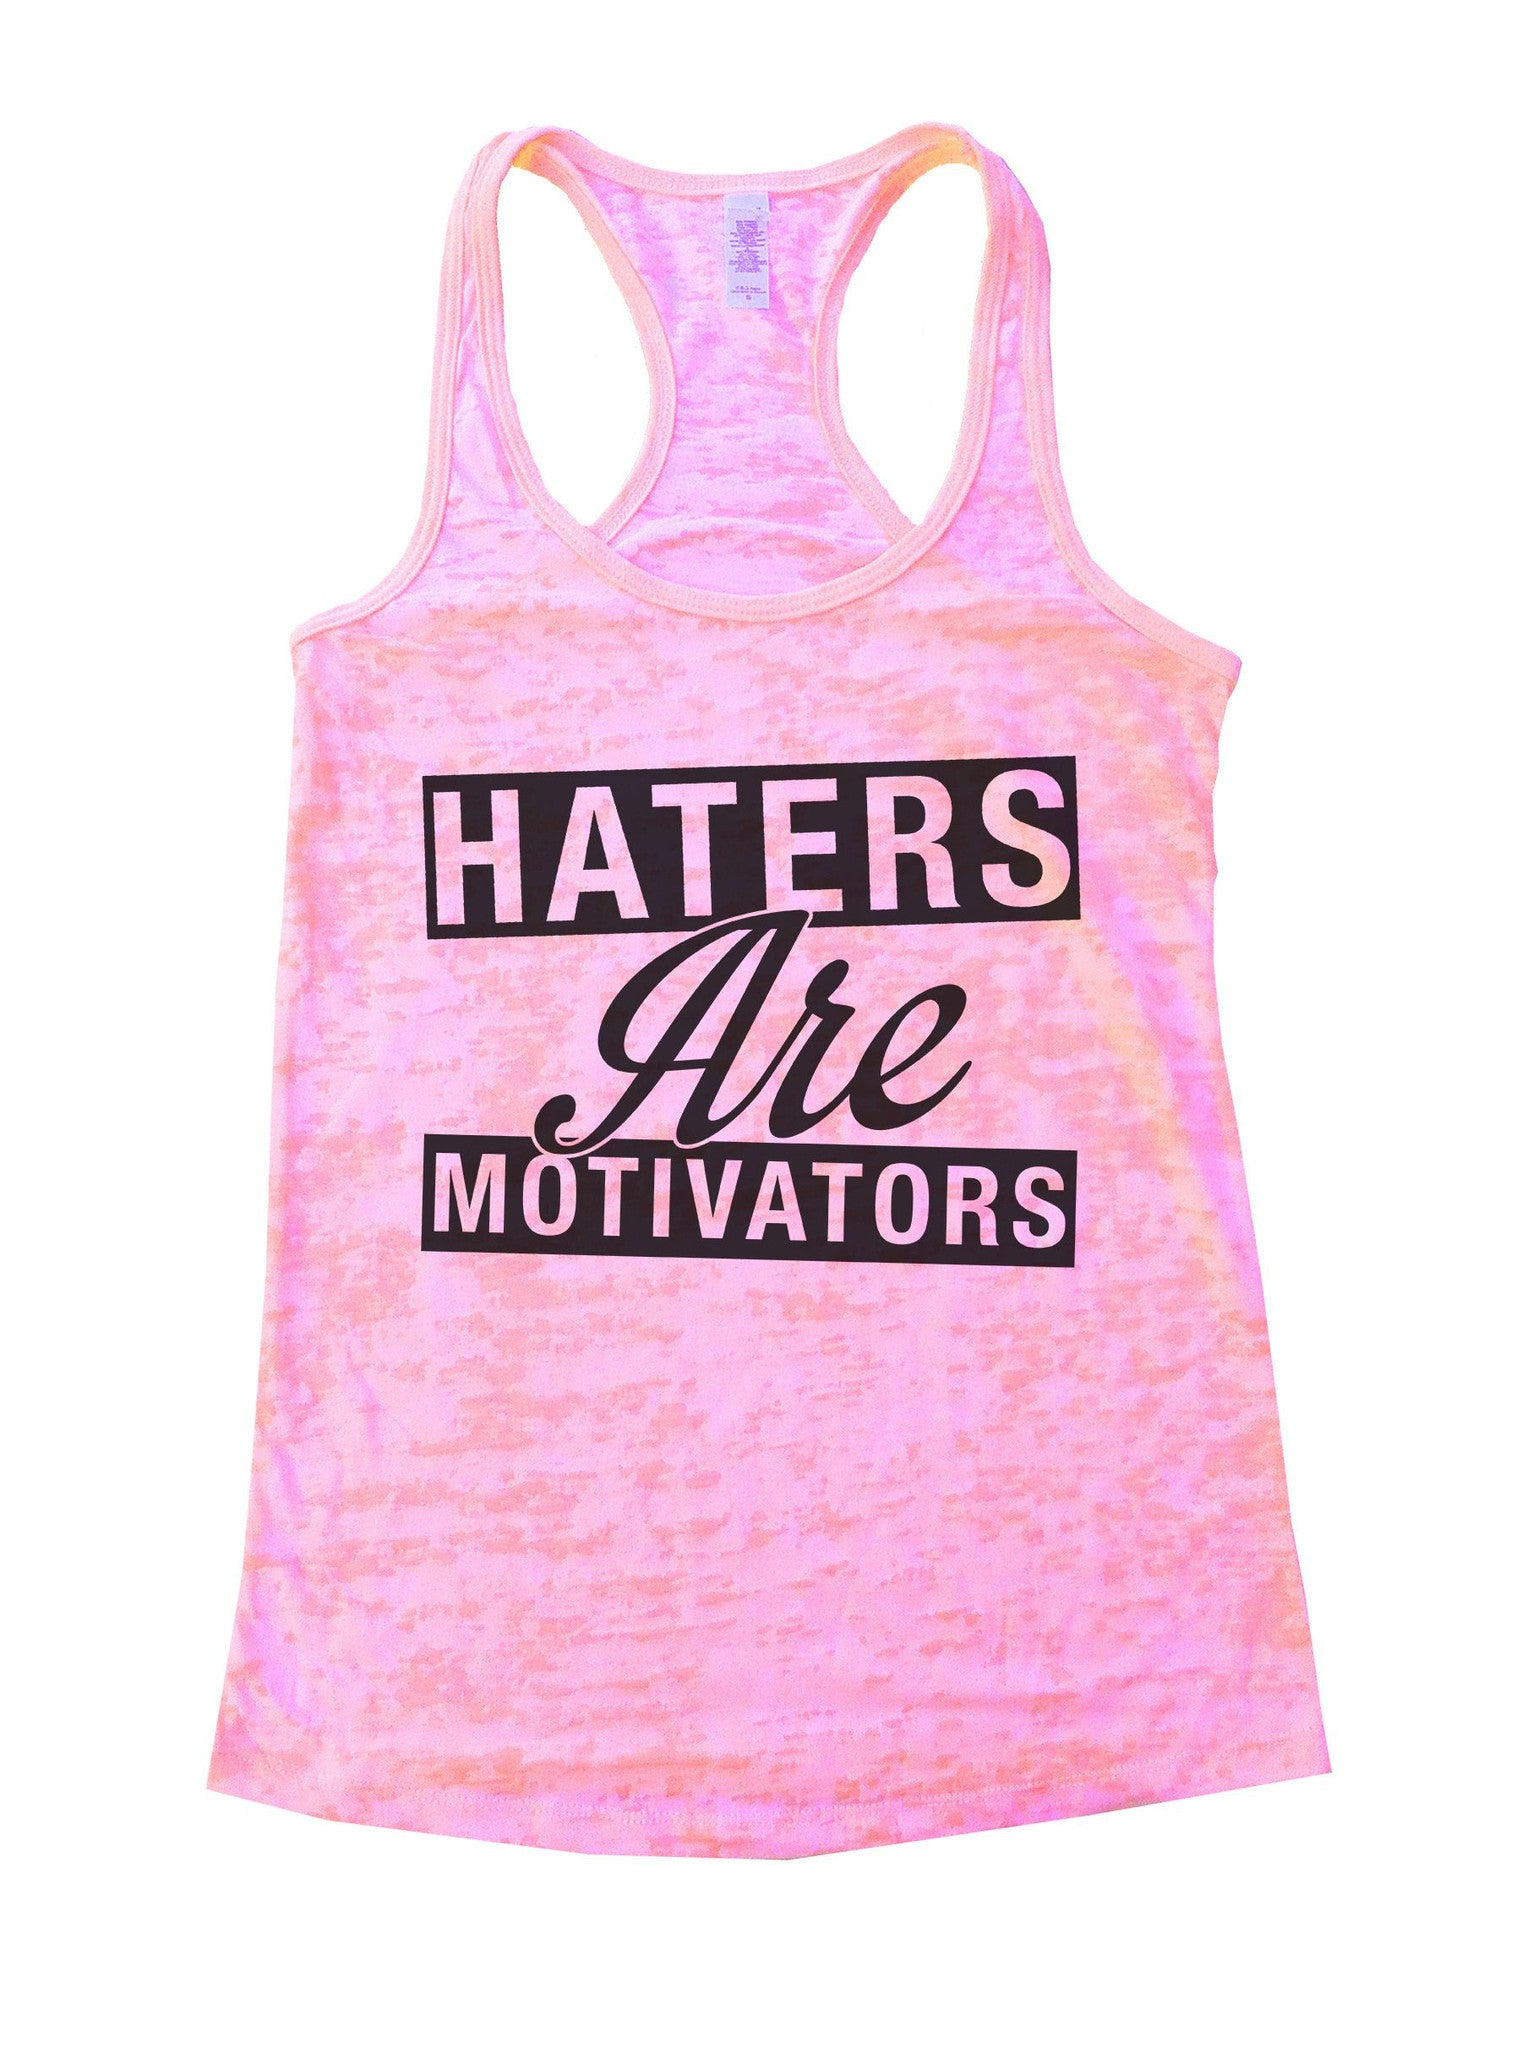 Haters Are Motivators Burnout Tank Top By BurnoutTankTops.com - 842 - Funny Shirts Tank Tops Burnouts and Triblends  - 1